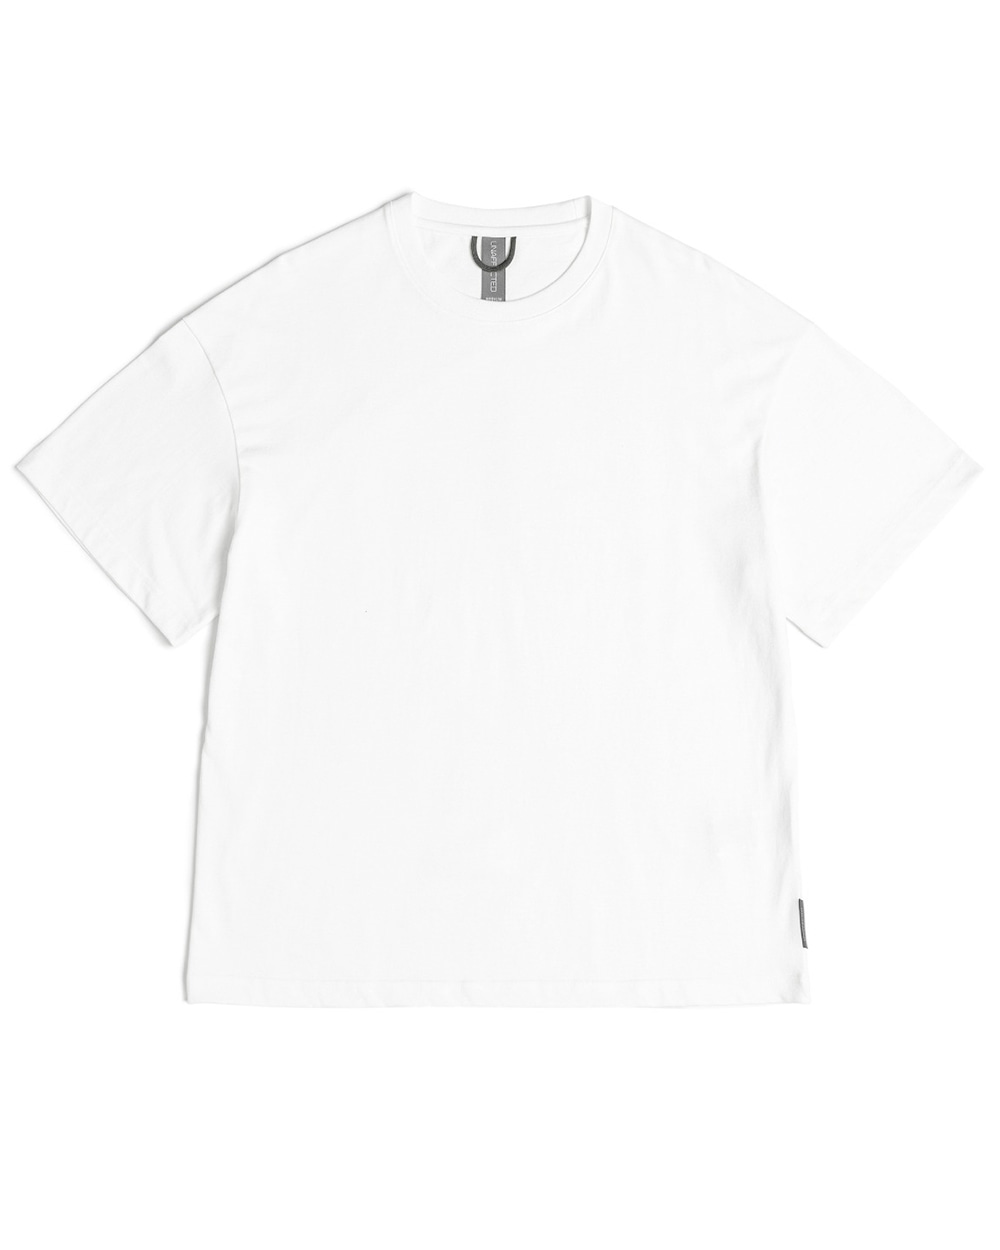 언어펙티드 LOGO LABEL T-SHIRT (Off white)